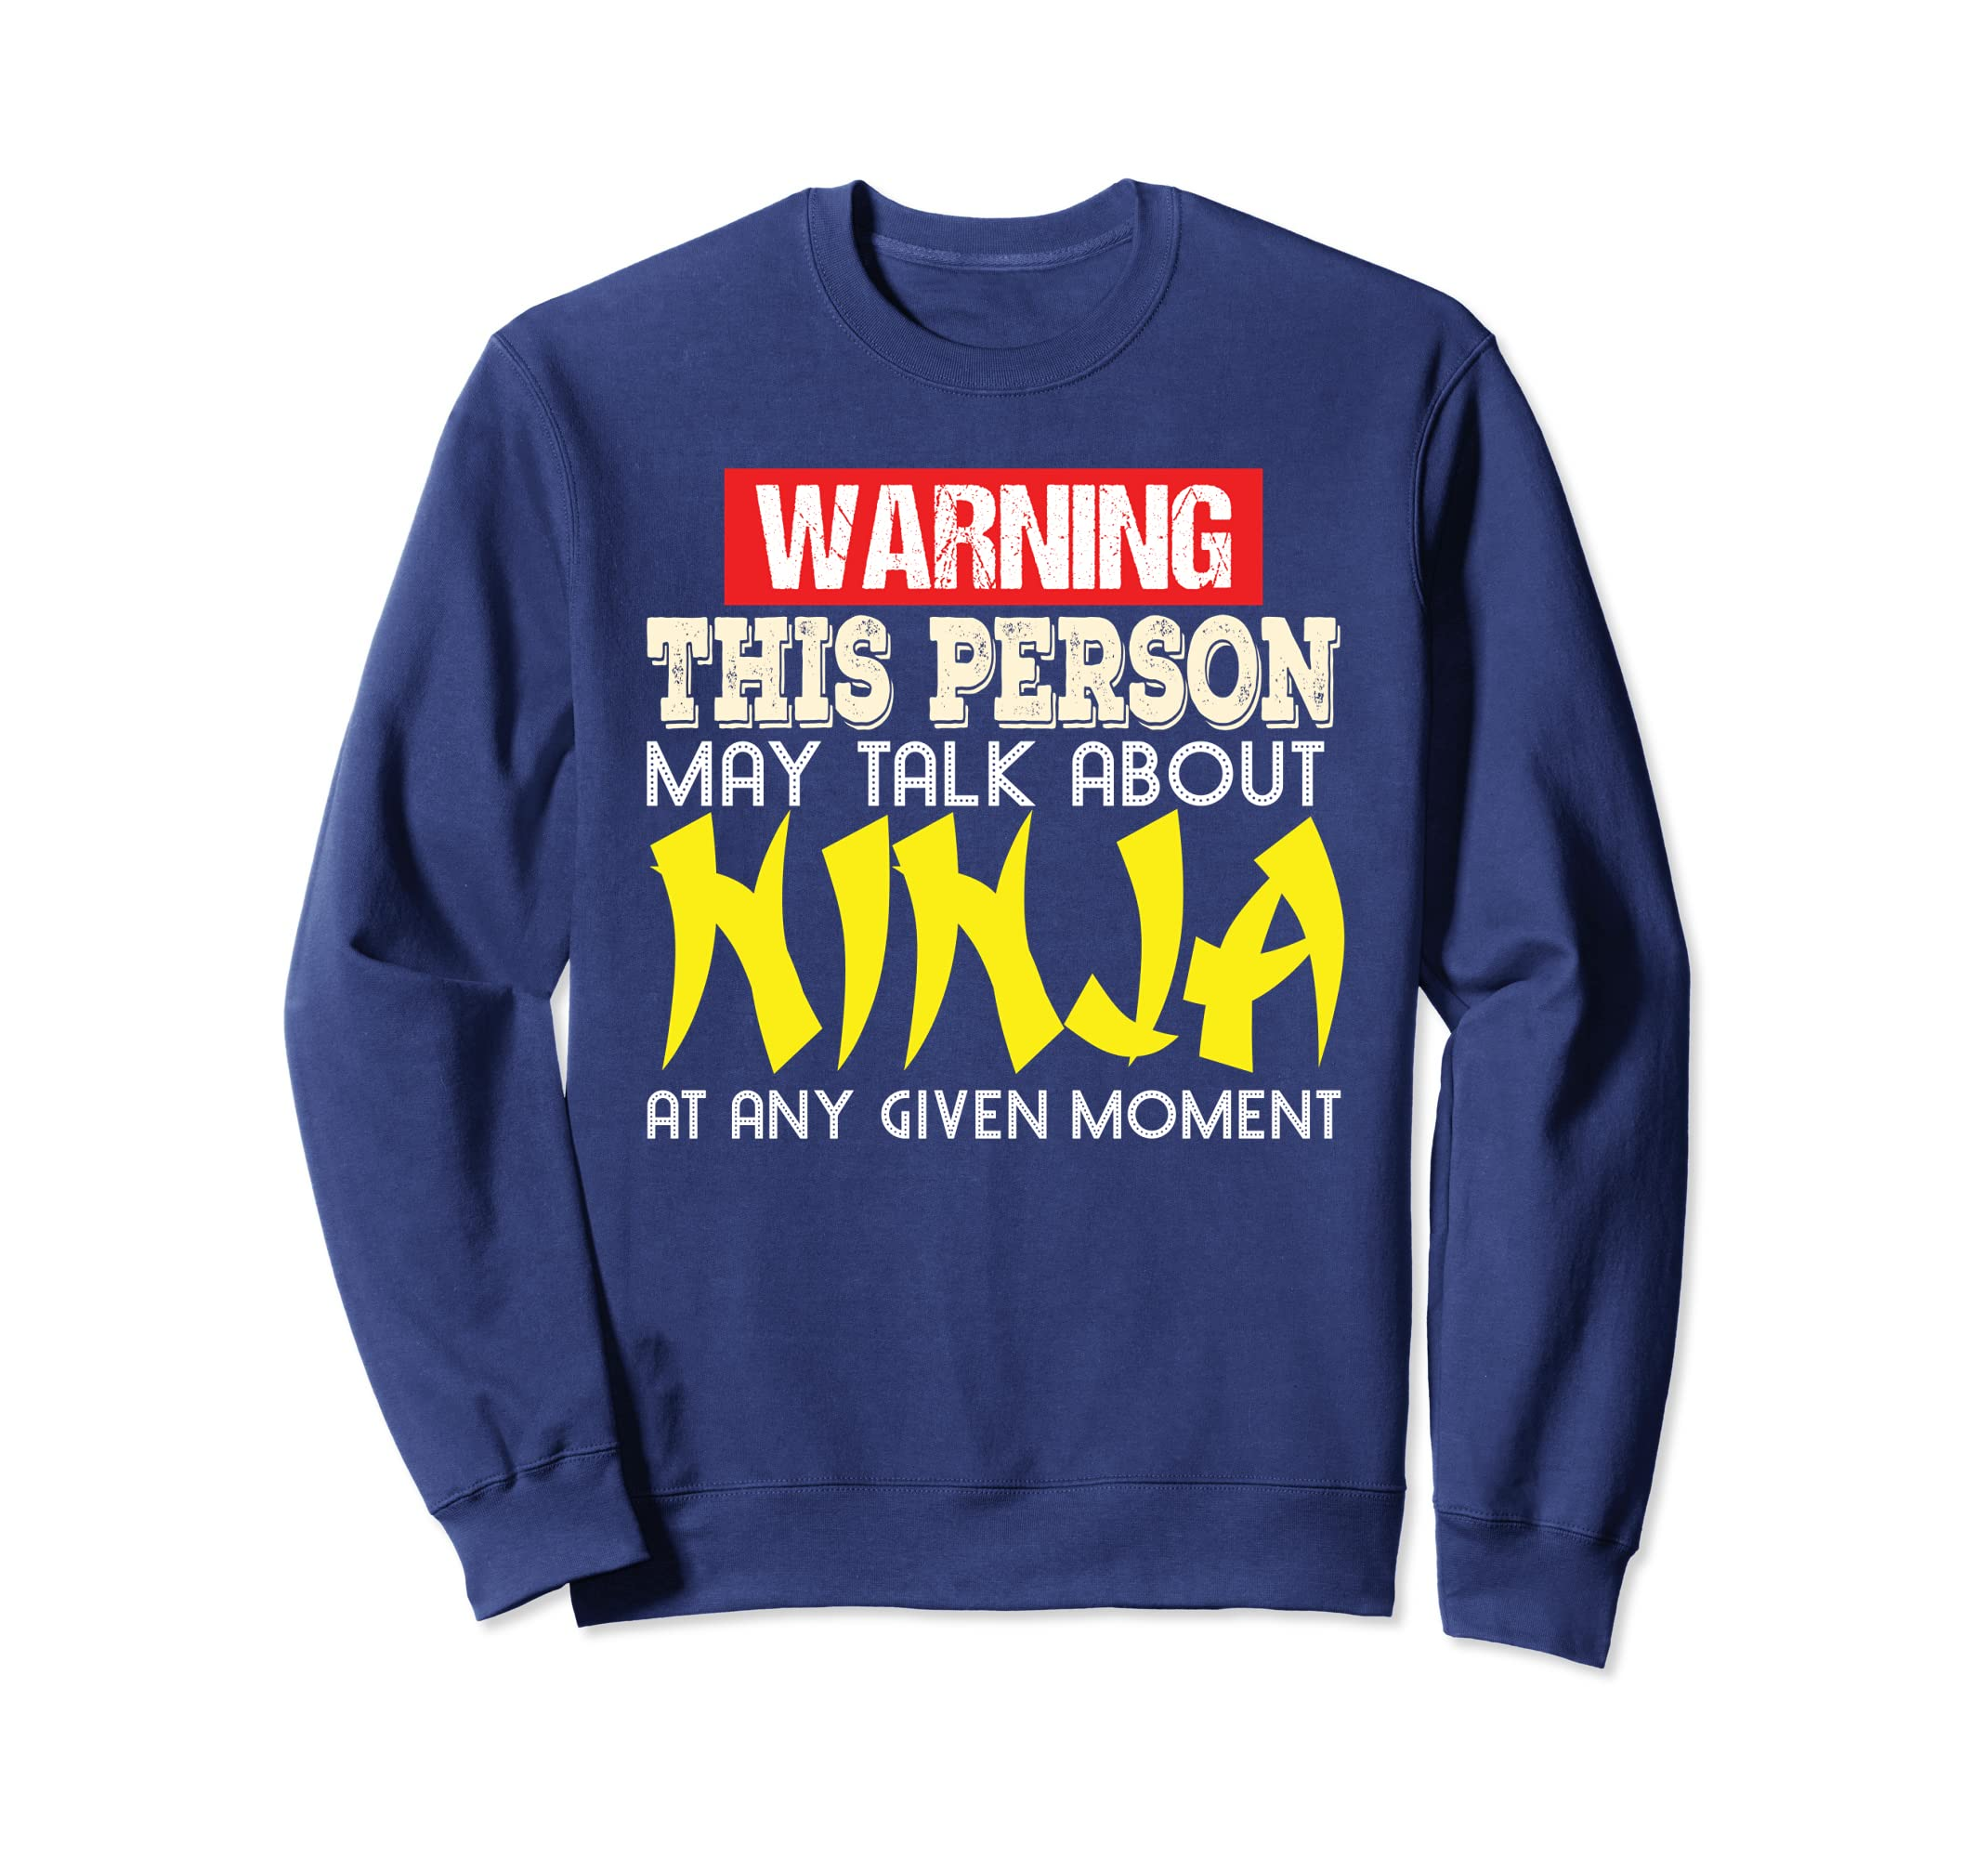 Amazon.com: This Person May Talk About Ninja Sweatshirt ...